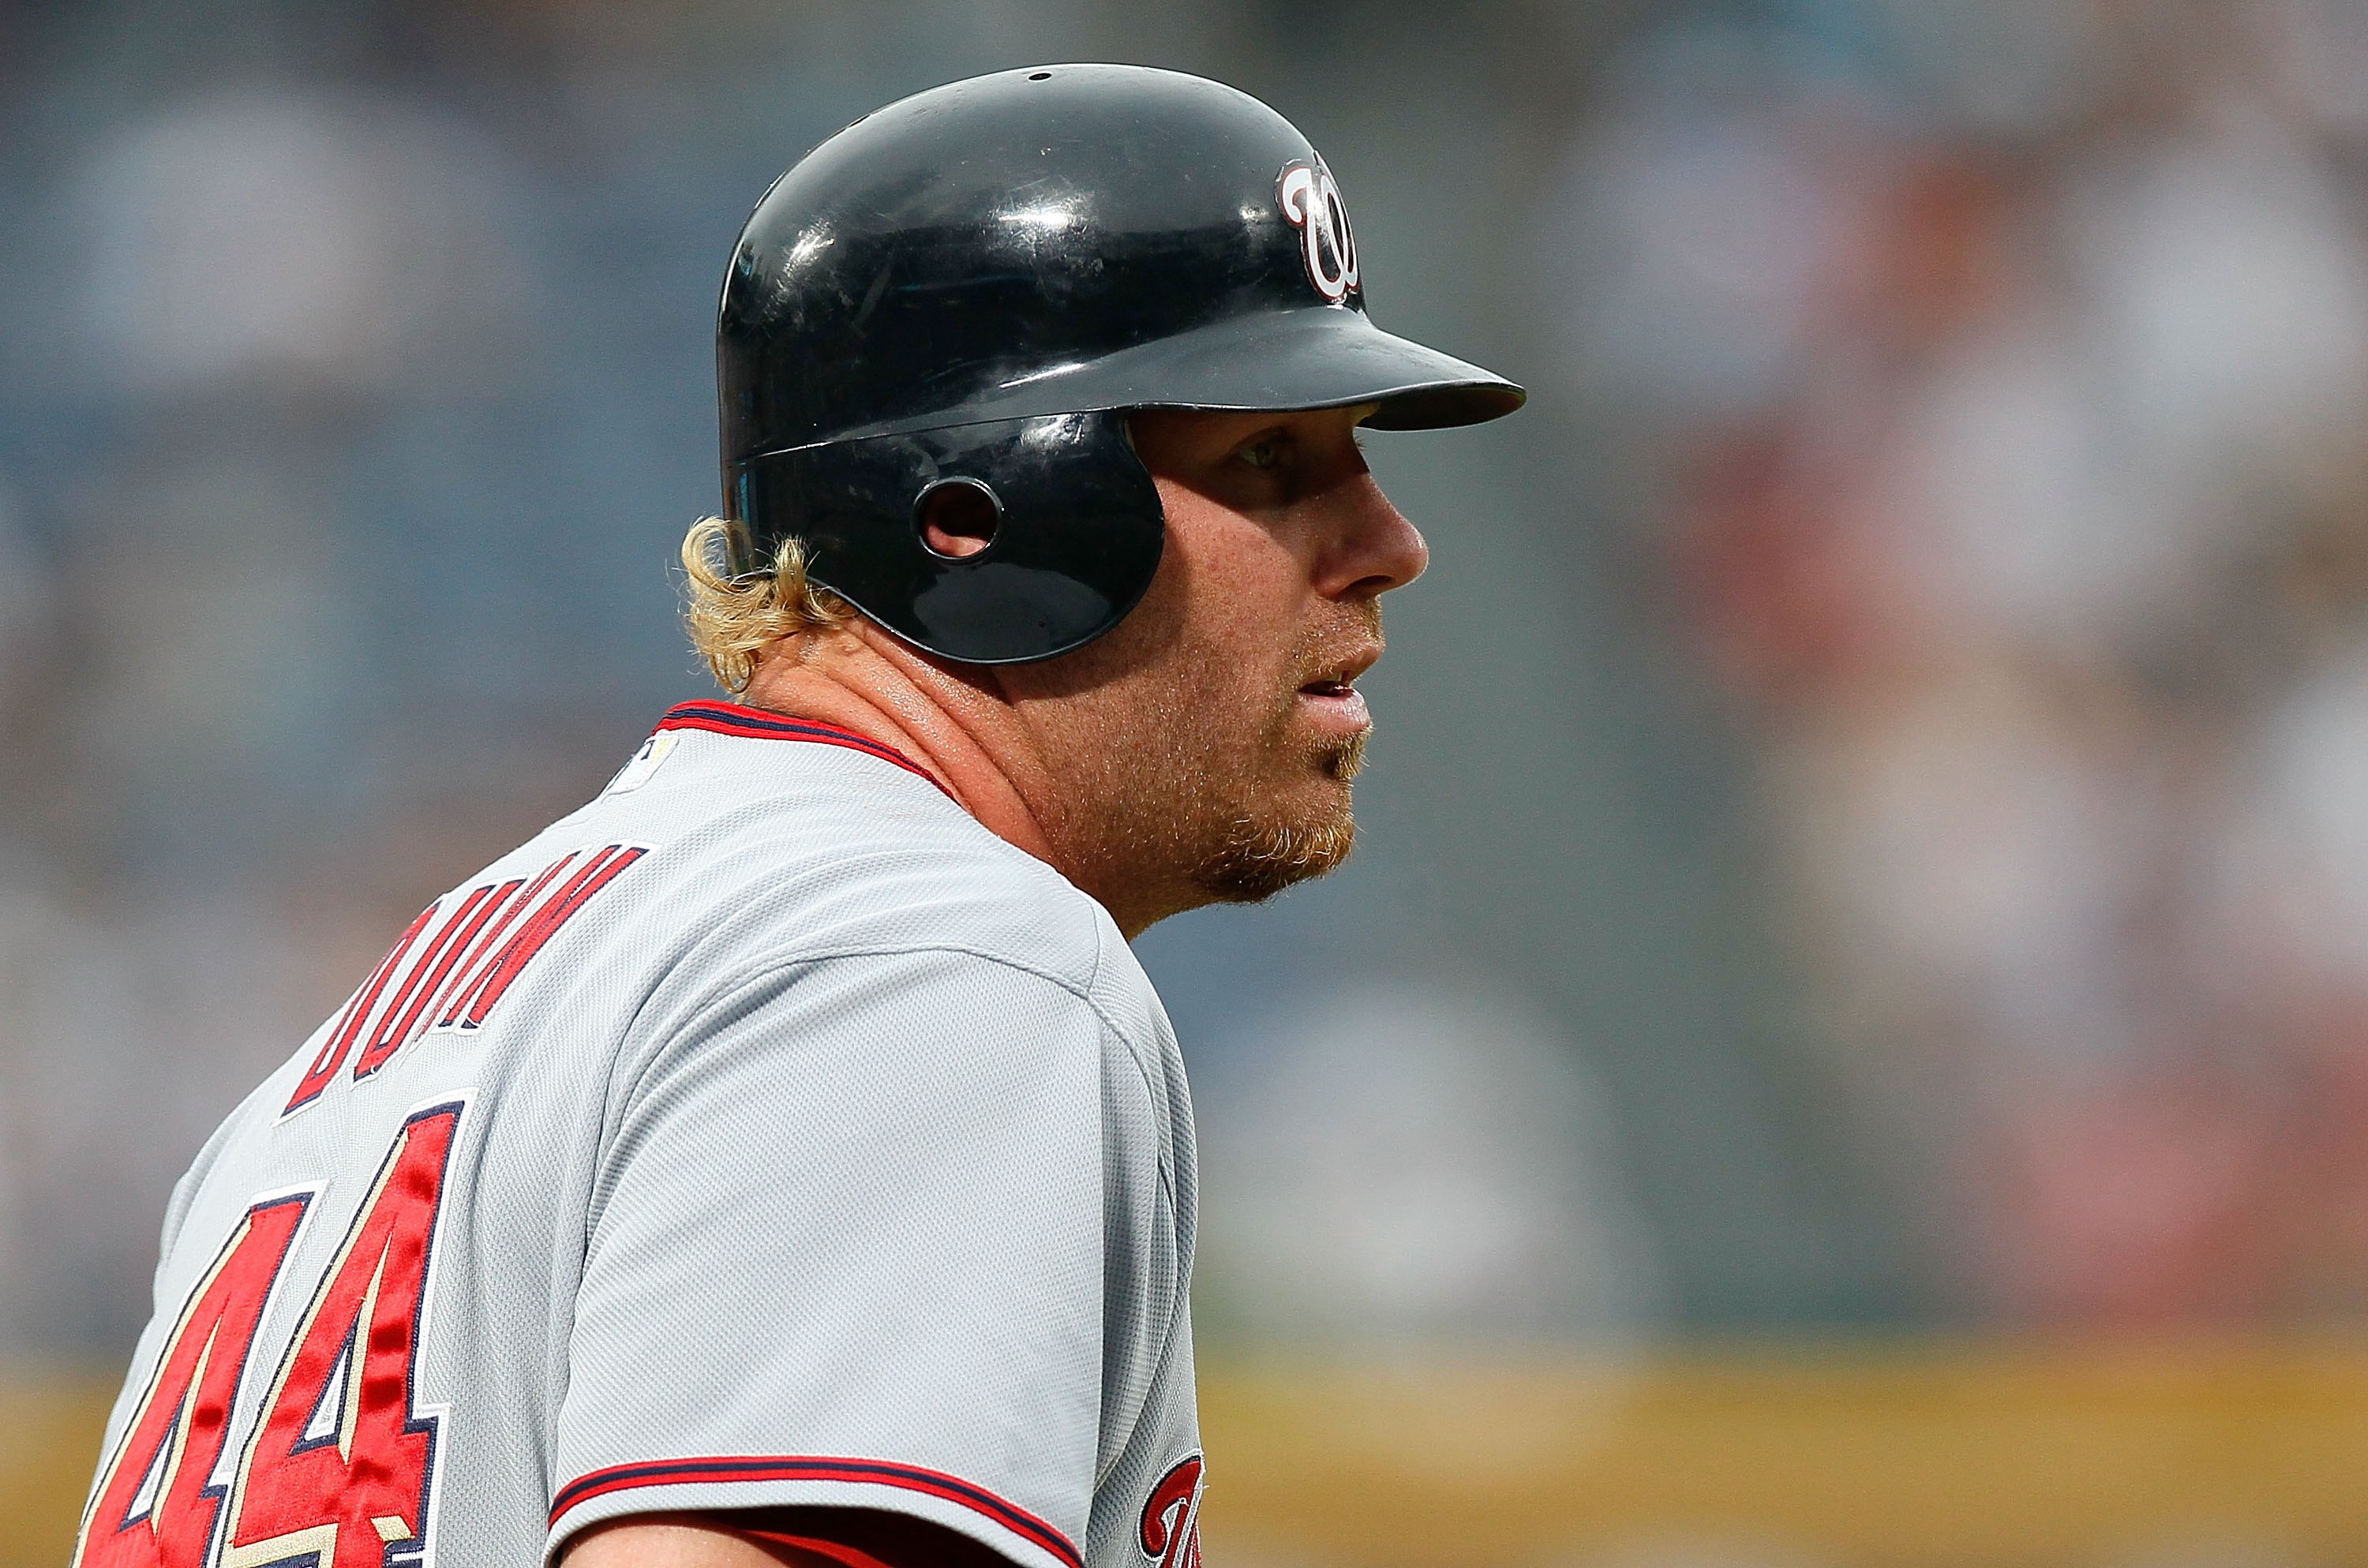 ATLANTA - JUNE 30:  Adam Dunn #44 of the Washington Nationals against the Atlanta Braves at Turner Field on June 30, 2010 in Atlanta, Georgia.  (Photo by Kevin C. Cox/Getty Images)